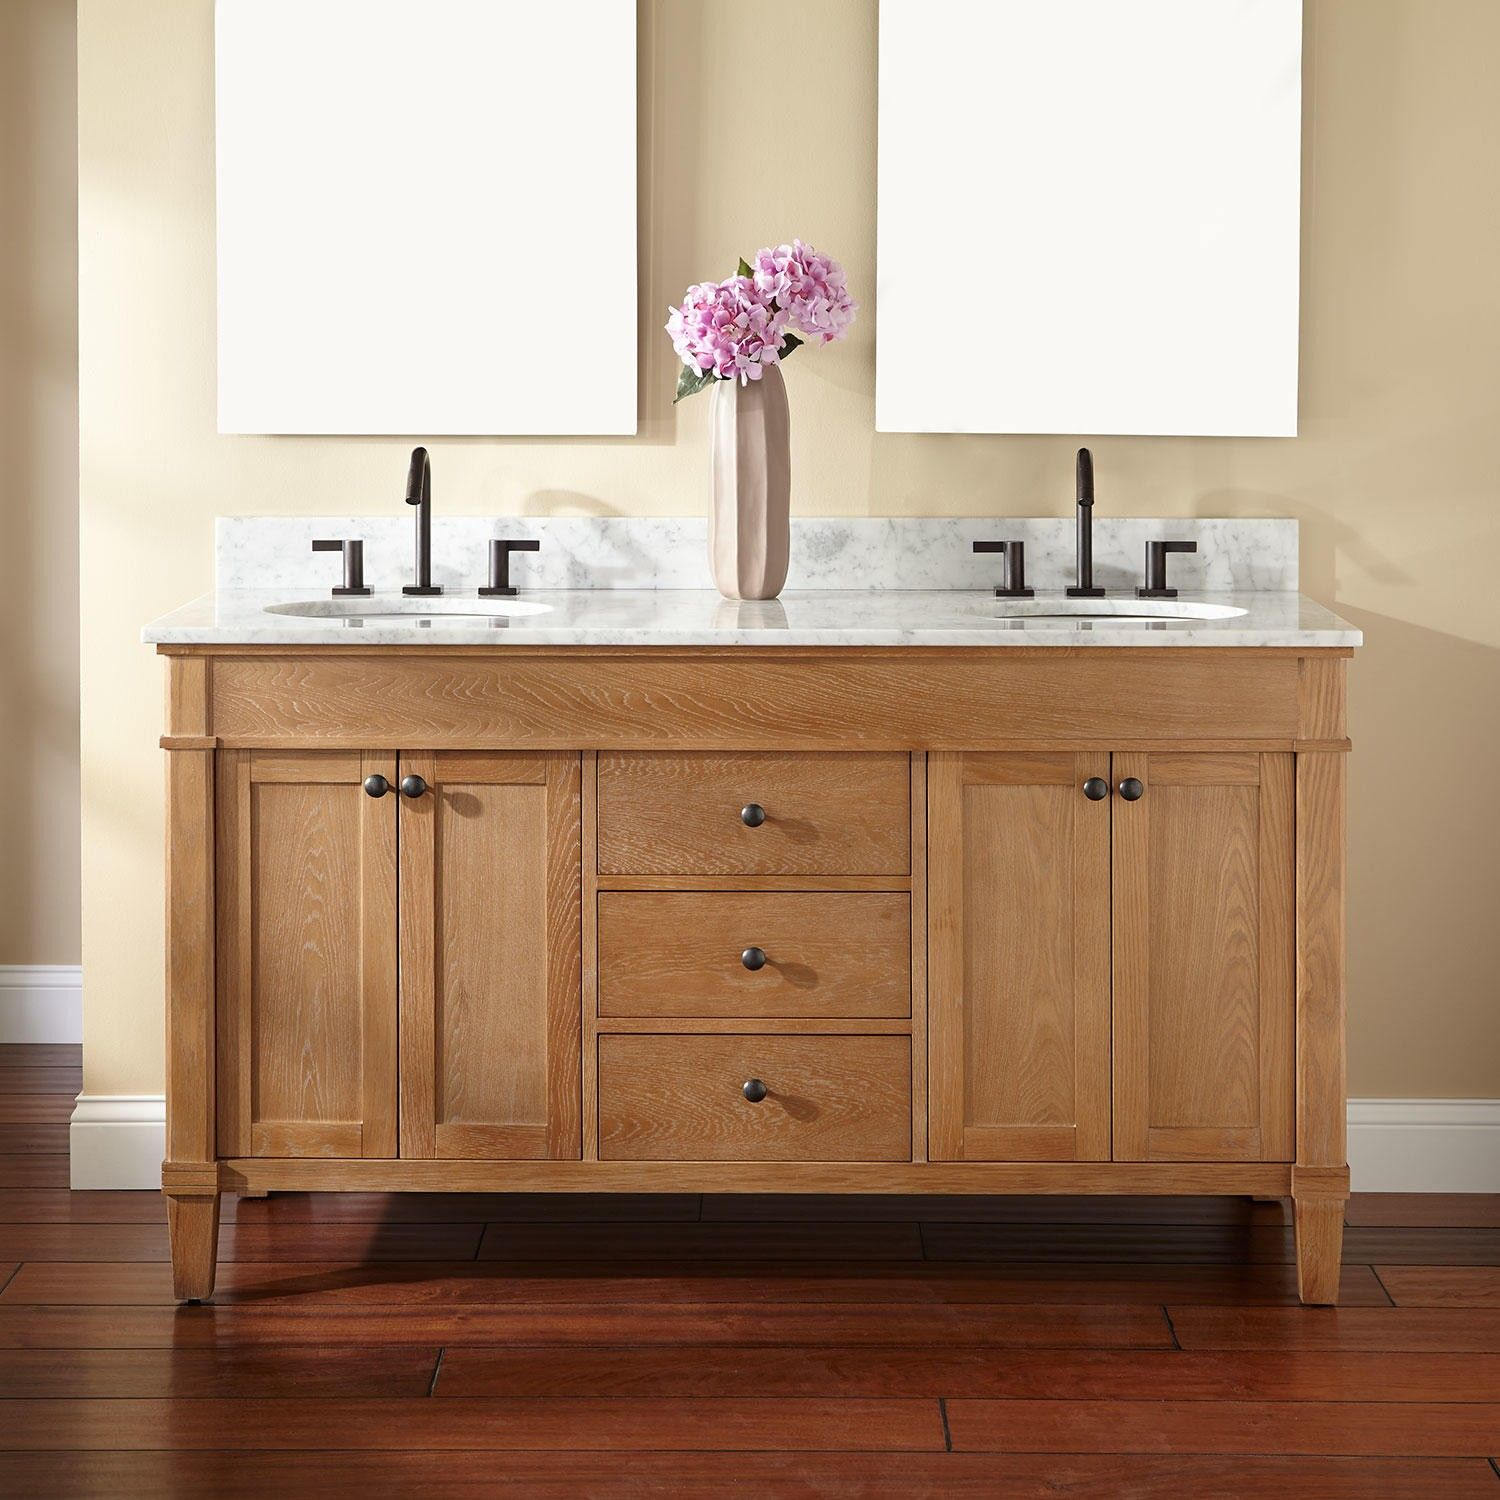 1805 One For Upstairs And One For Downstairs 60 Marilla Double Vanity For Undermount Sinks Home Depot Bathroom Vanity